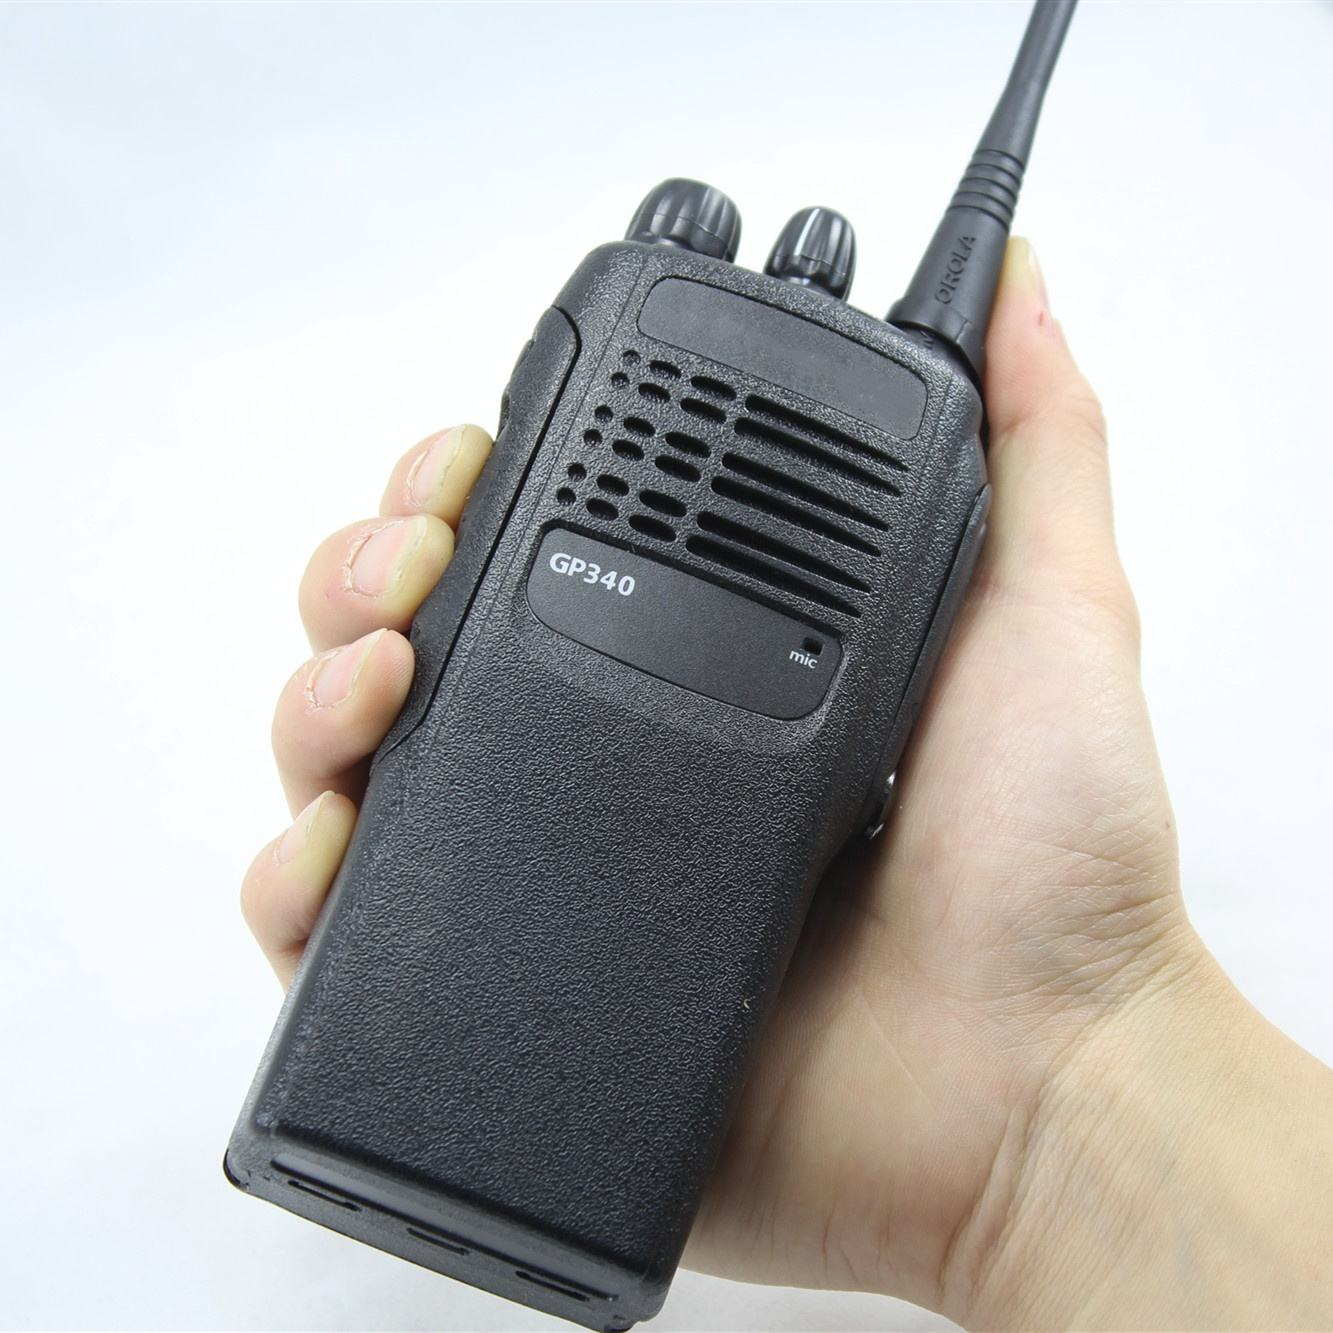 VHF UHF GP-340 Walkie Talkie 16CH GP340 untuk Motorola 2 Way <span class=keywords><strong>Radio</strong></span>